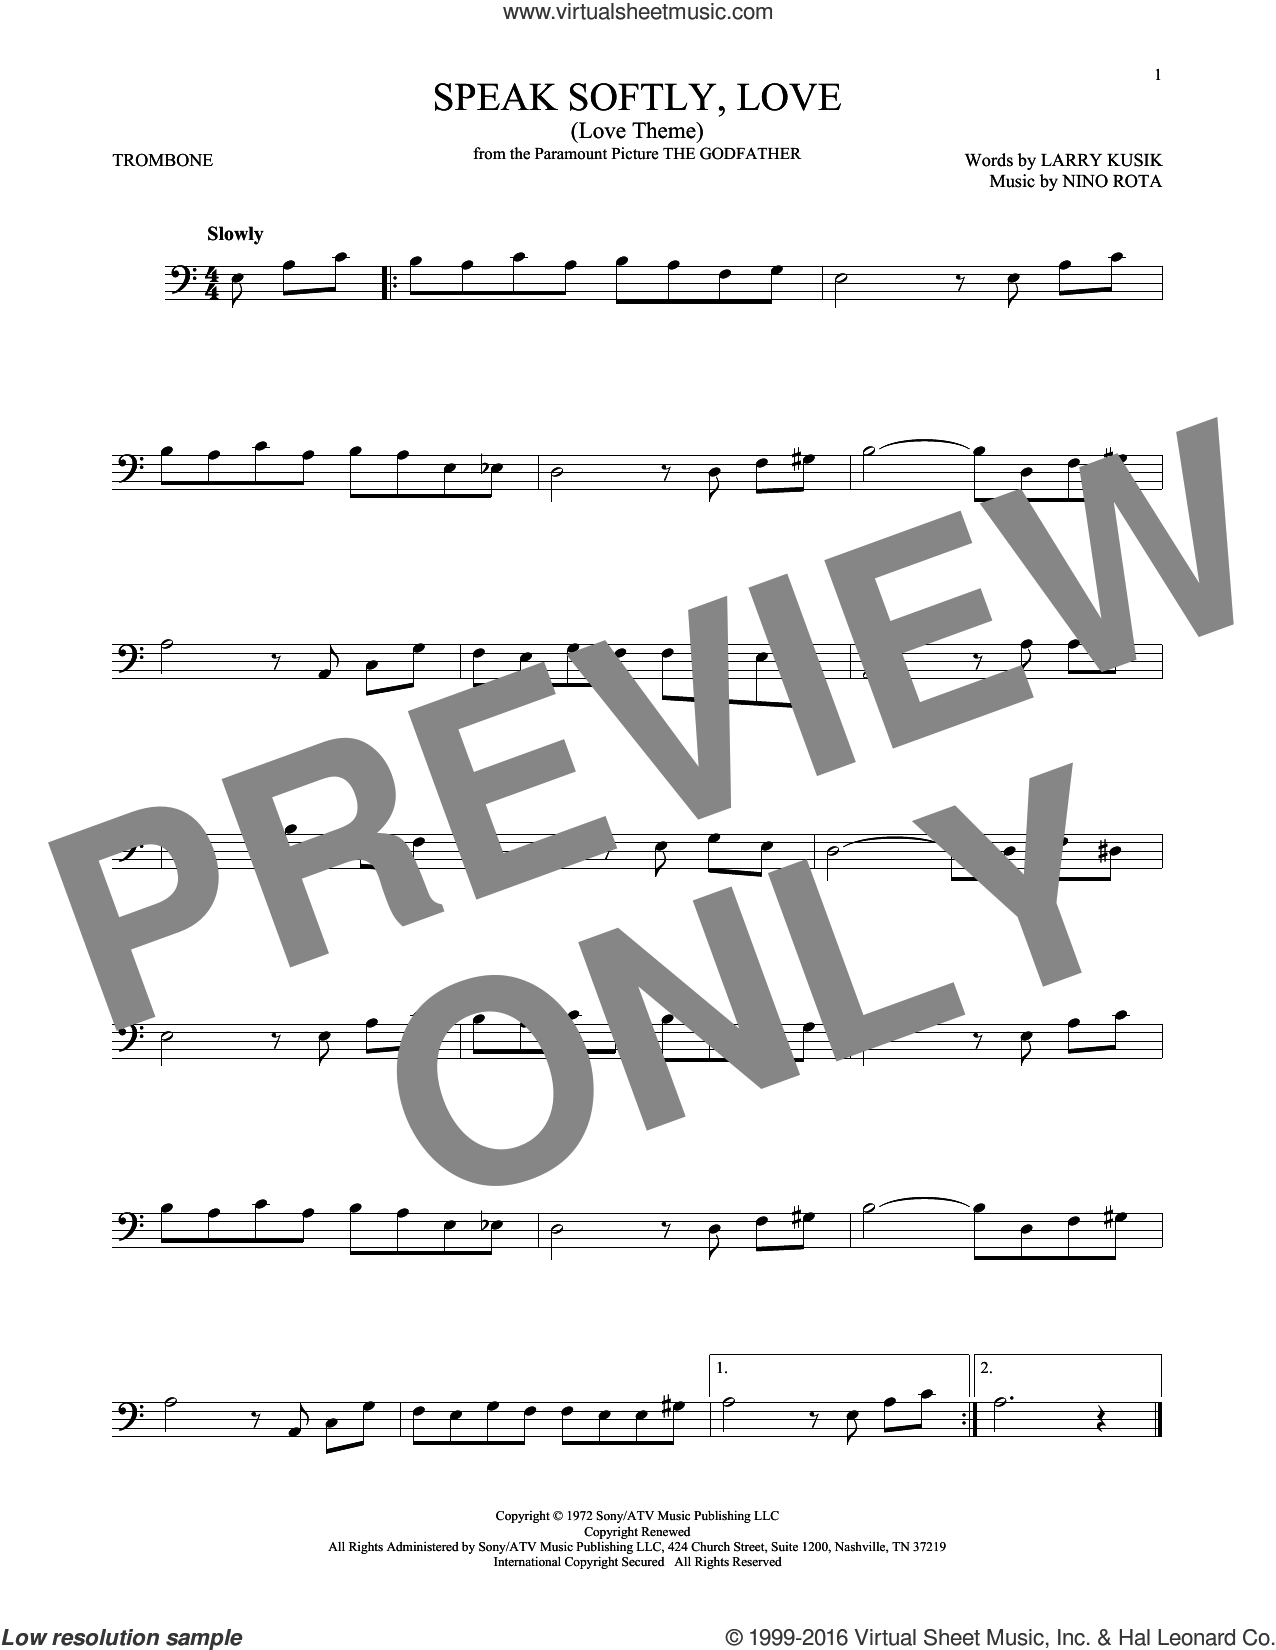 Speak Softly, Love (Love Theme) sheet music for trombone solo by Nino Rota, Andy Williams and Larry Kusik. Score Image Preview.